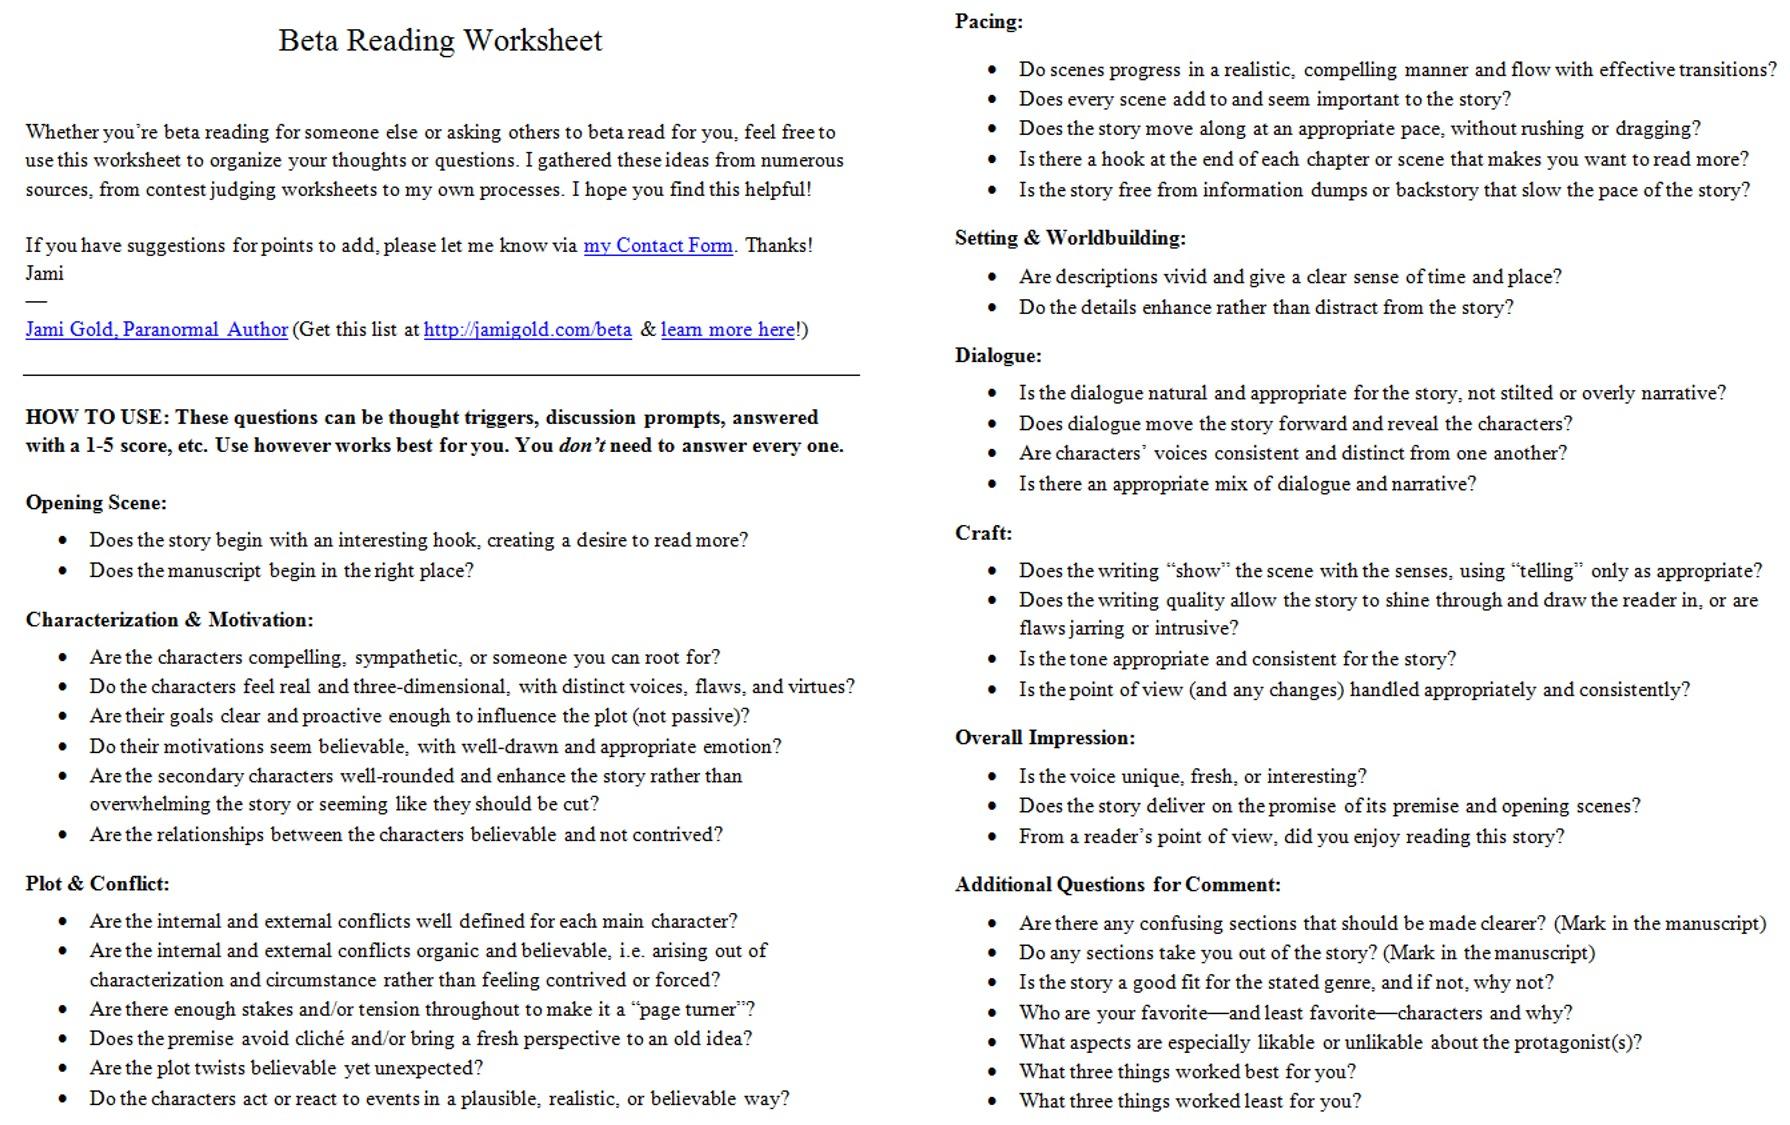 Aldiablosus  Picturesque Worksheets For Writers  Jami Gold Paranormal Author With Lovable Screen Shot Of The Twopage Beta Reading Worksheet With Delightful Ch Th Sh Worksheets Also Adjective Word Order Worksheet In Addition Watercycle Worksheets And Odd And Even Worksheets Printable As Well As Nouns Worksheet For Grade  Additionally Math Grade  Worksheet From Jamigoldcom With Aldiablosus  Lovable Worksheets For Writers  Jami Gold Paranormal Author With Delightful Screen Shot Of The Twopage Beta Reading Worksheet And Picturesque Ch Th Sh Worksheets Also Adjective Word Order Worksheet In Addition Watercycle Worksheets From Jamigoldcom